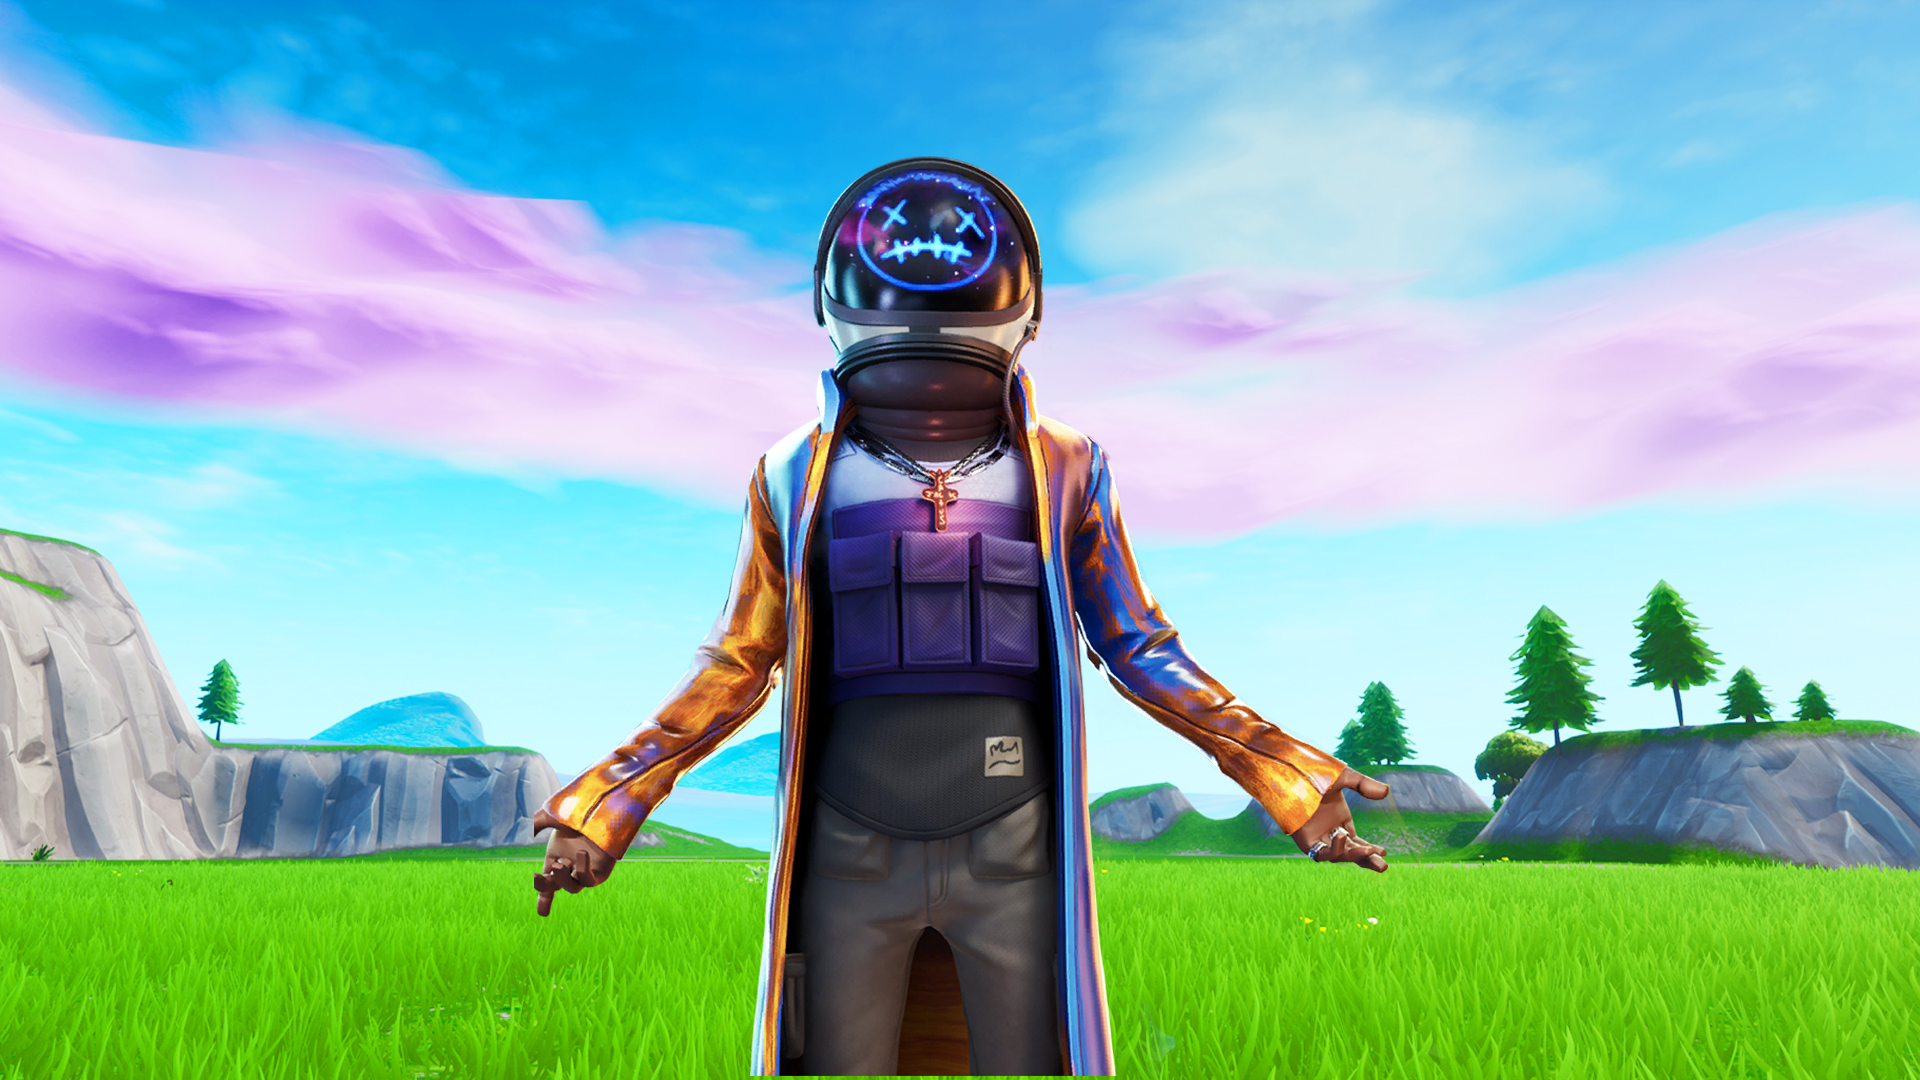 All Details About The New Astro Jack Skin And Fortnite Astronomical Event Astro Jack Fortnite Wallpapers Mega Themes